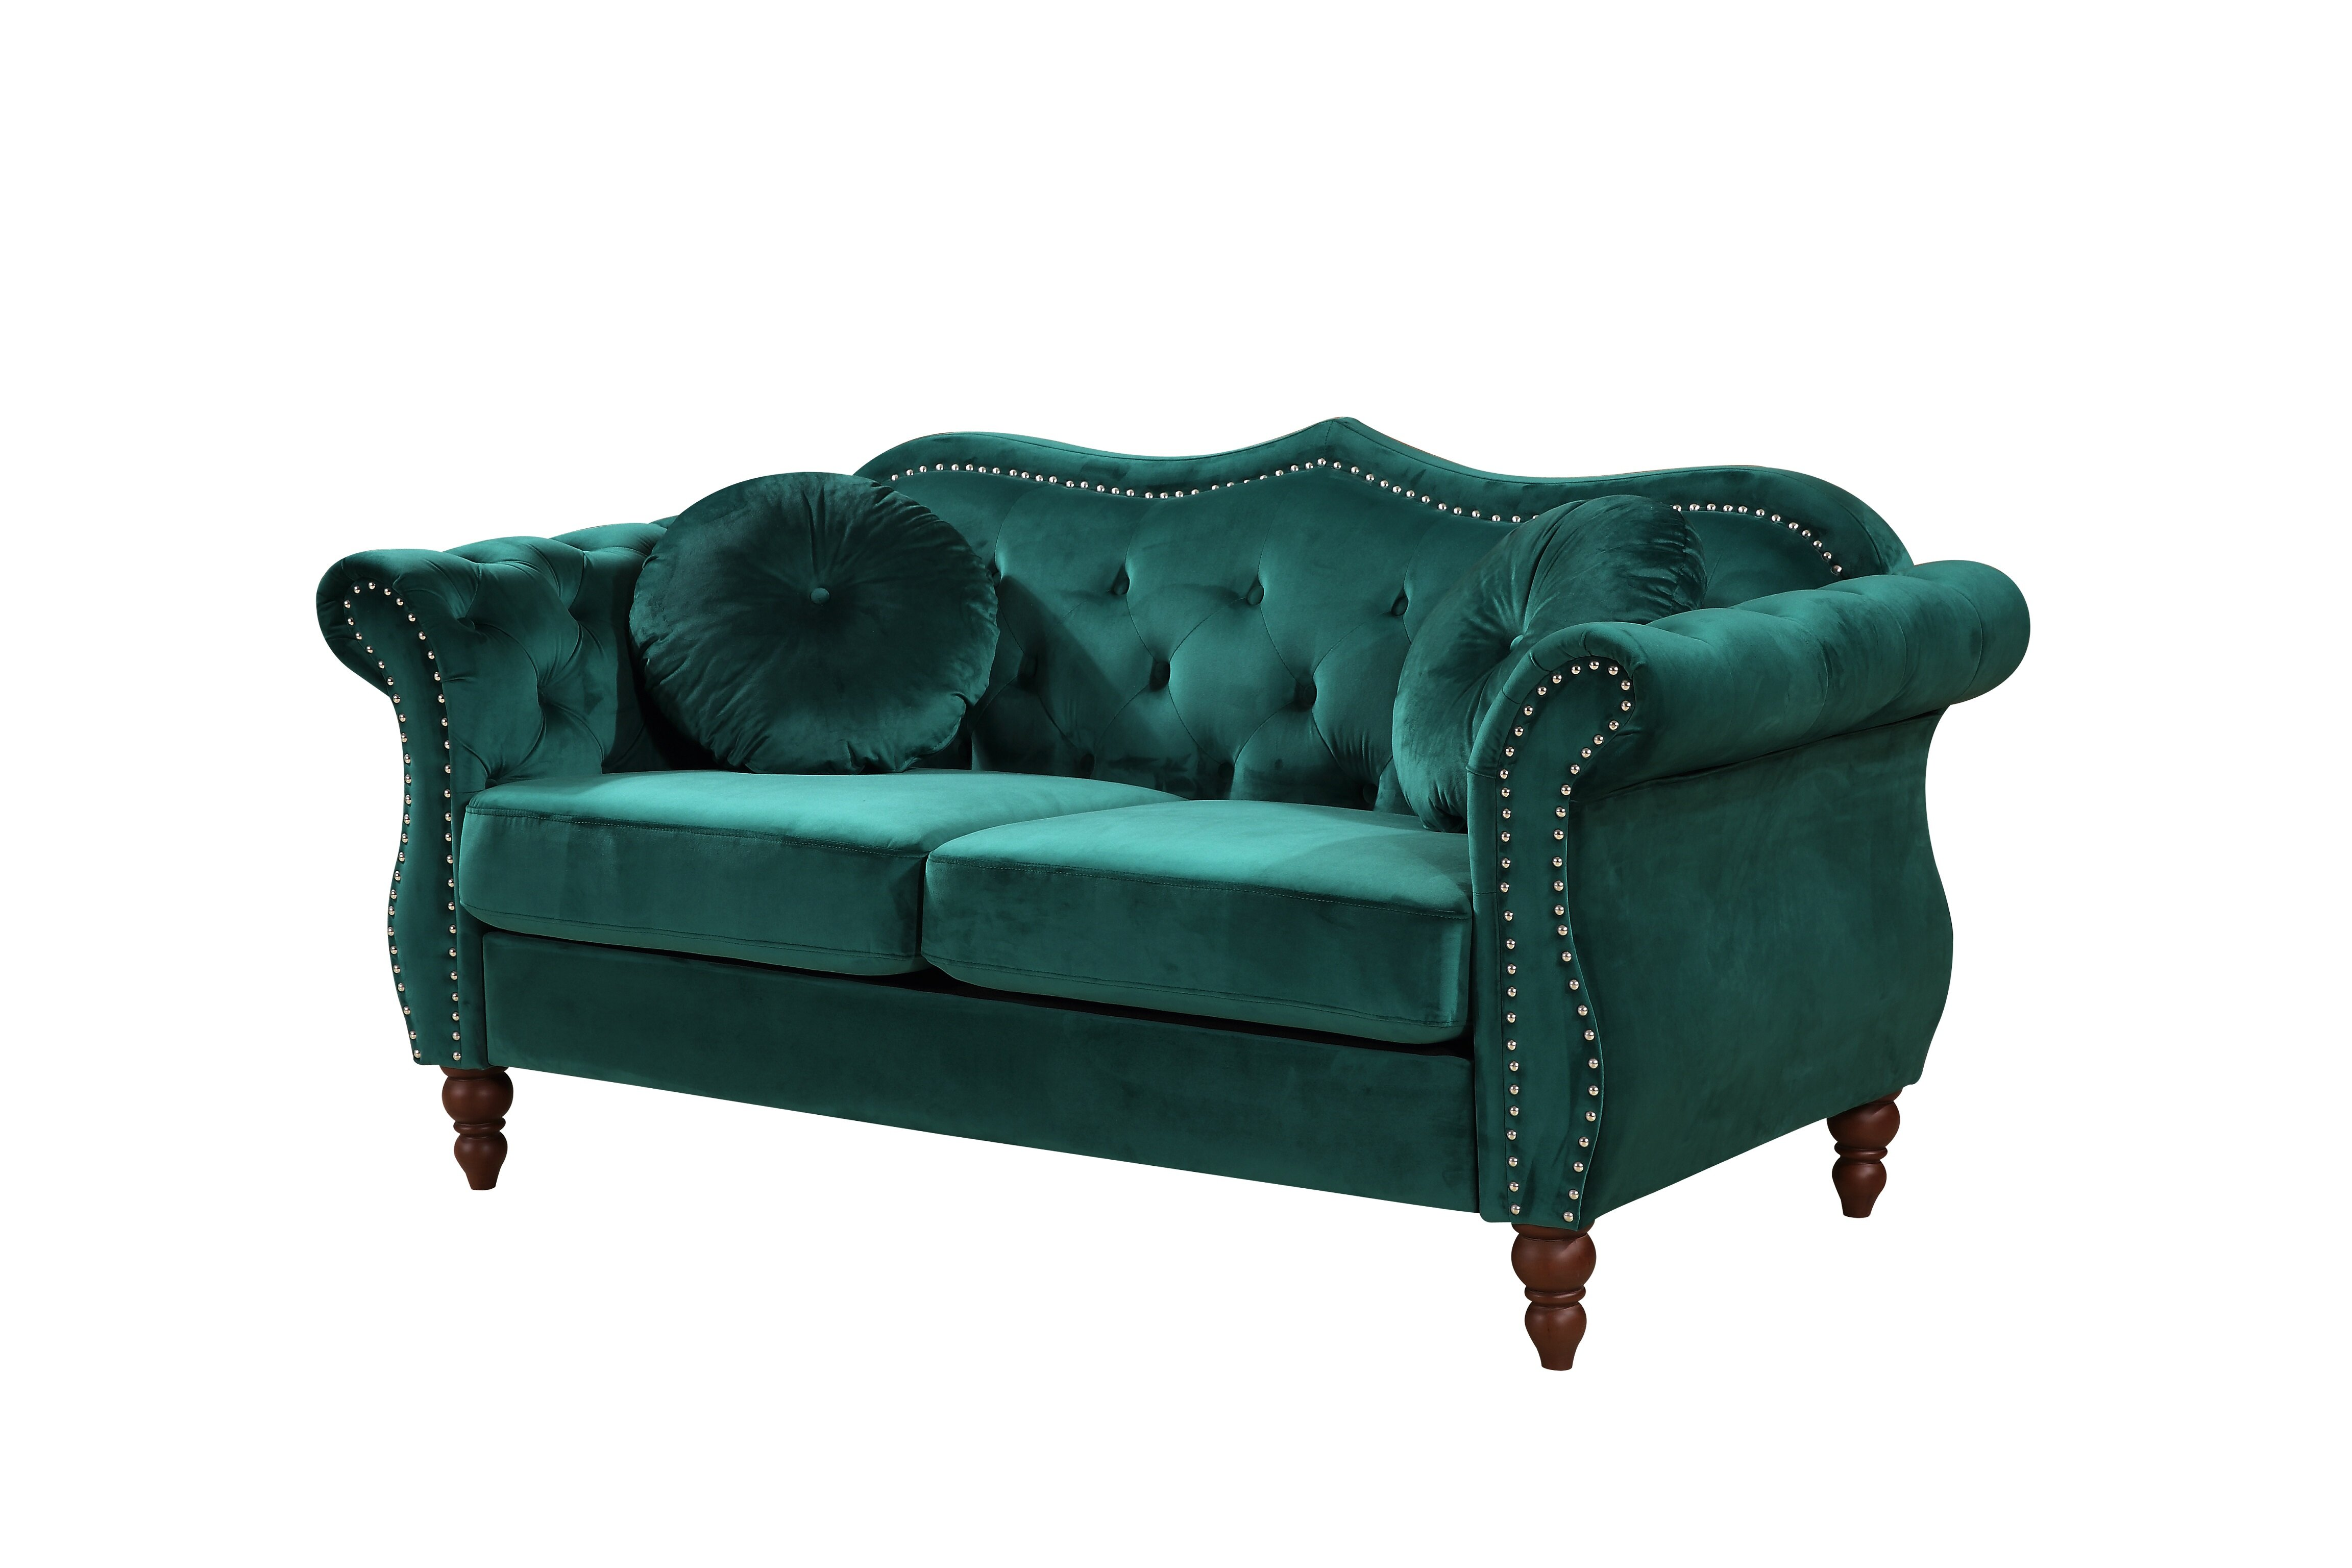 full loveseat bean table and leather combo couch black matching green chair bag slipcover with ottoman of price sale velvet dining ca cover furniture for size ethan kijiji paramount allen loveseatlovesac console ektorp ikea microsuede